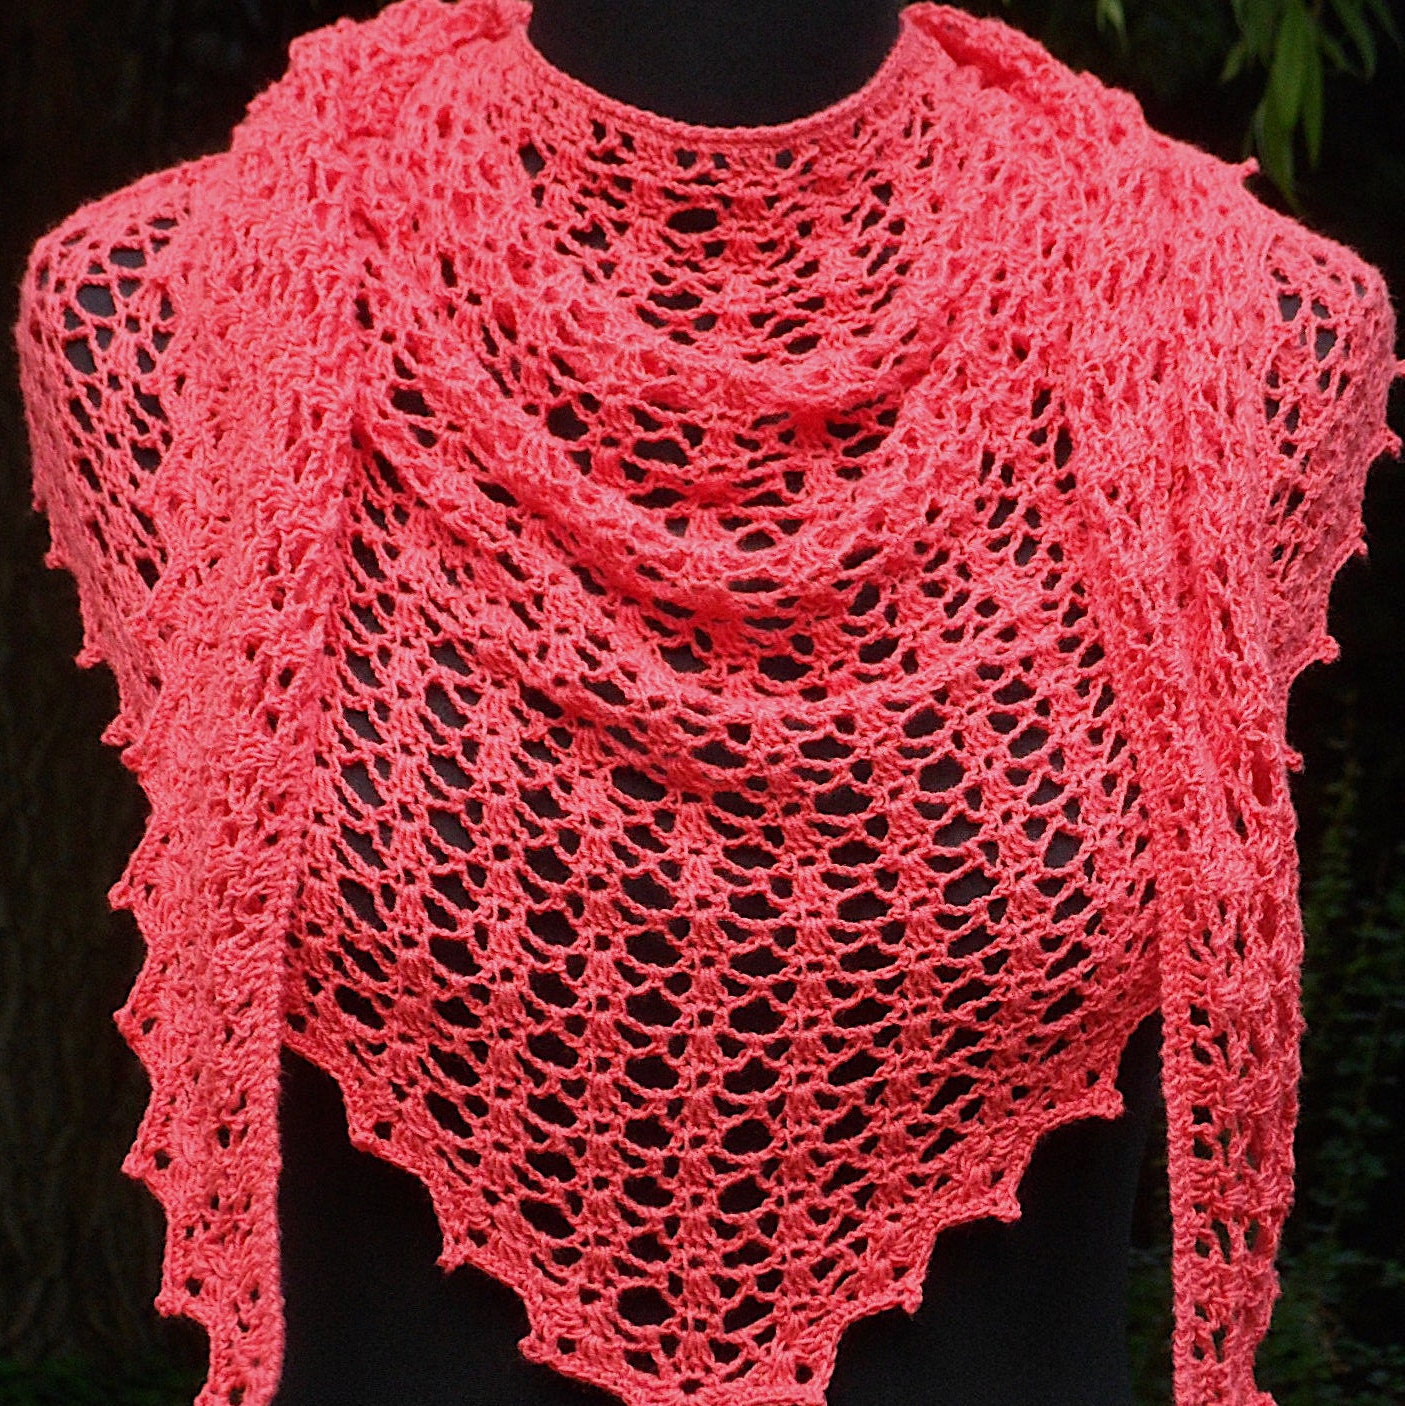 Tanelly - Unique Handmade Knitwear and Crochet accessories